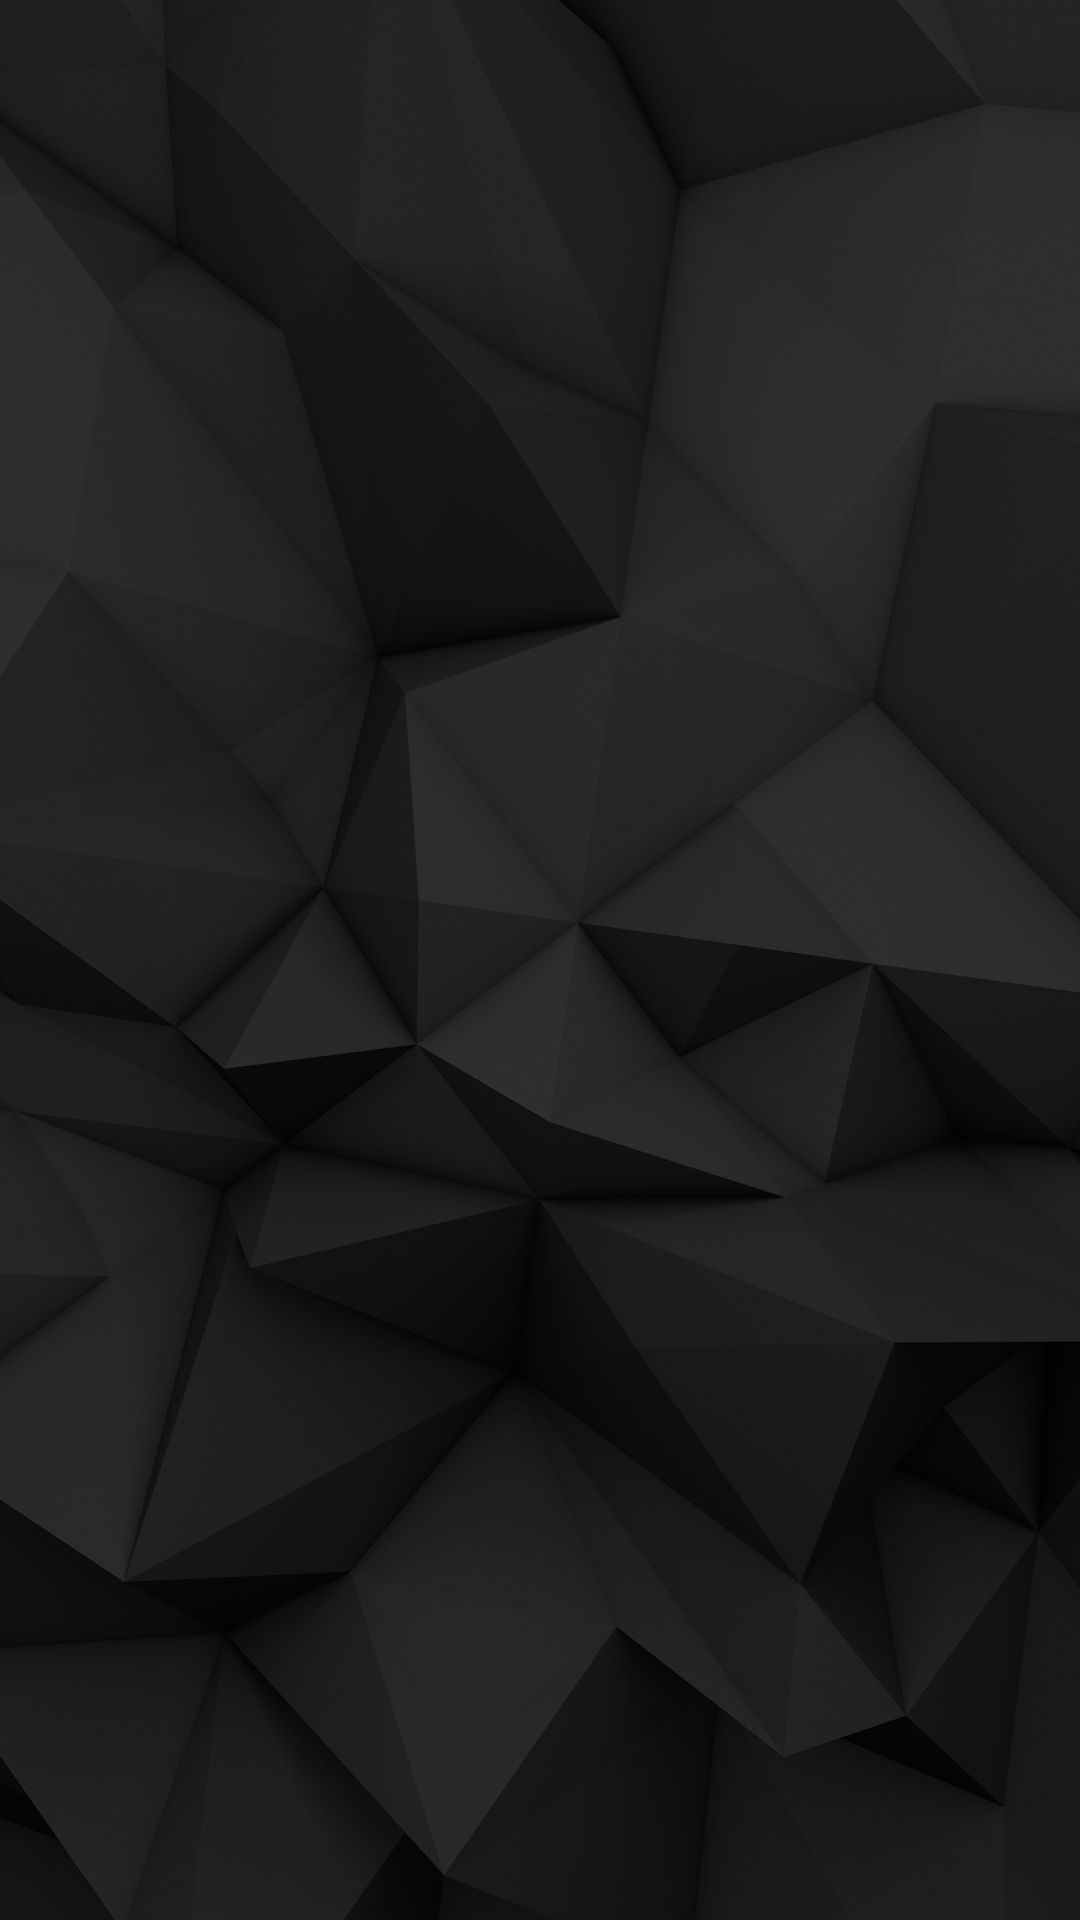 Black Wallpaper Black Wallpaper Black Wallpaper Iphone Iphone 7 Wallpapers Black